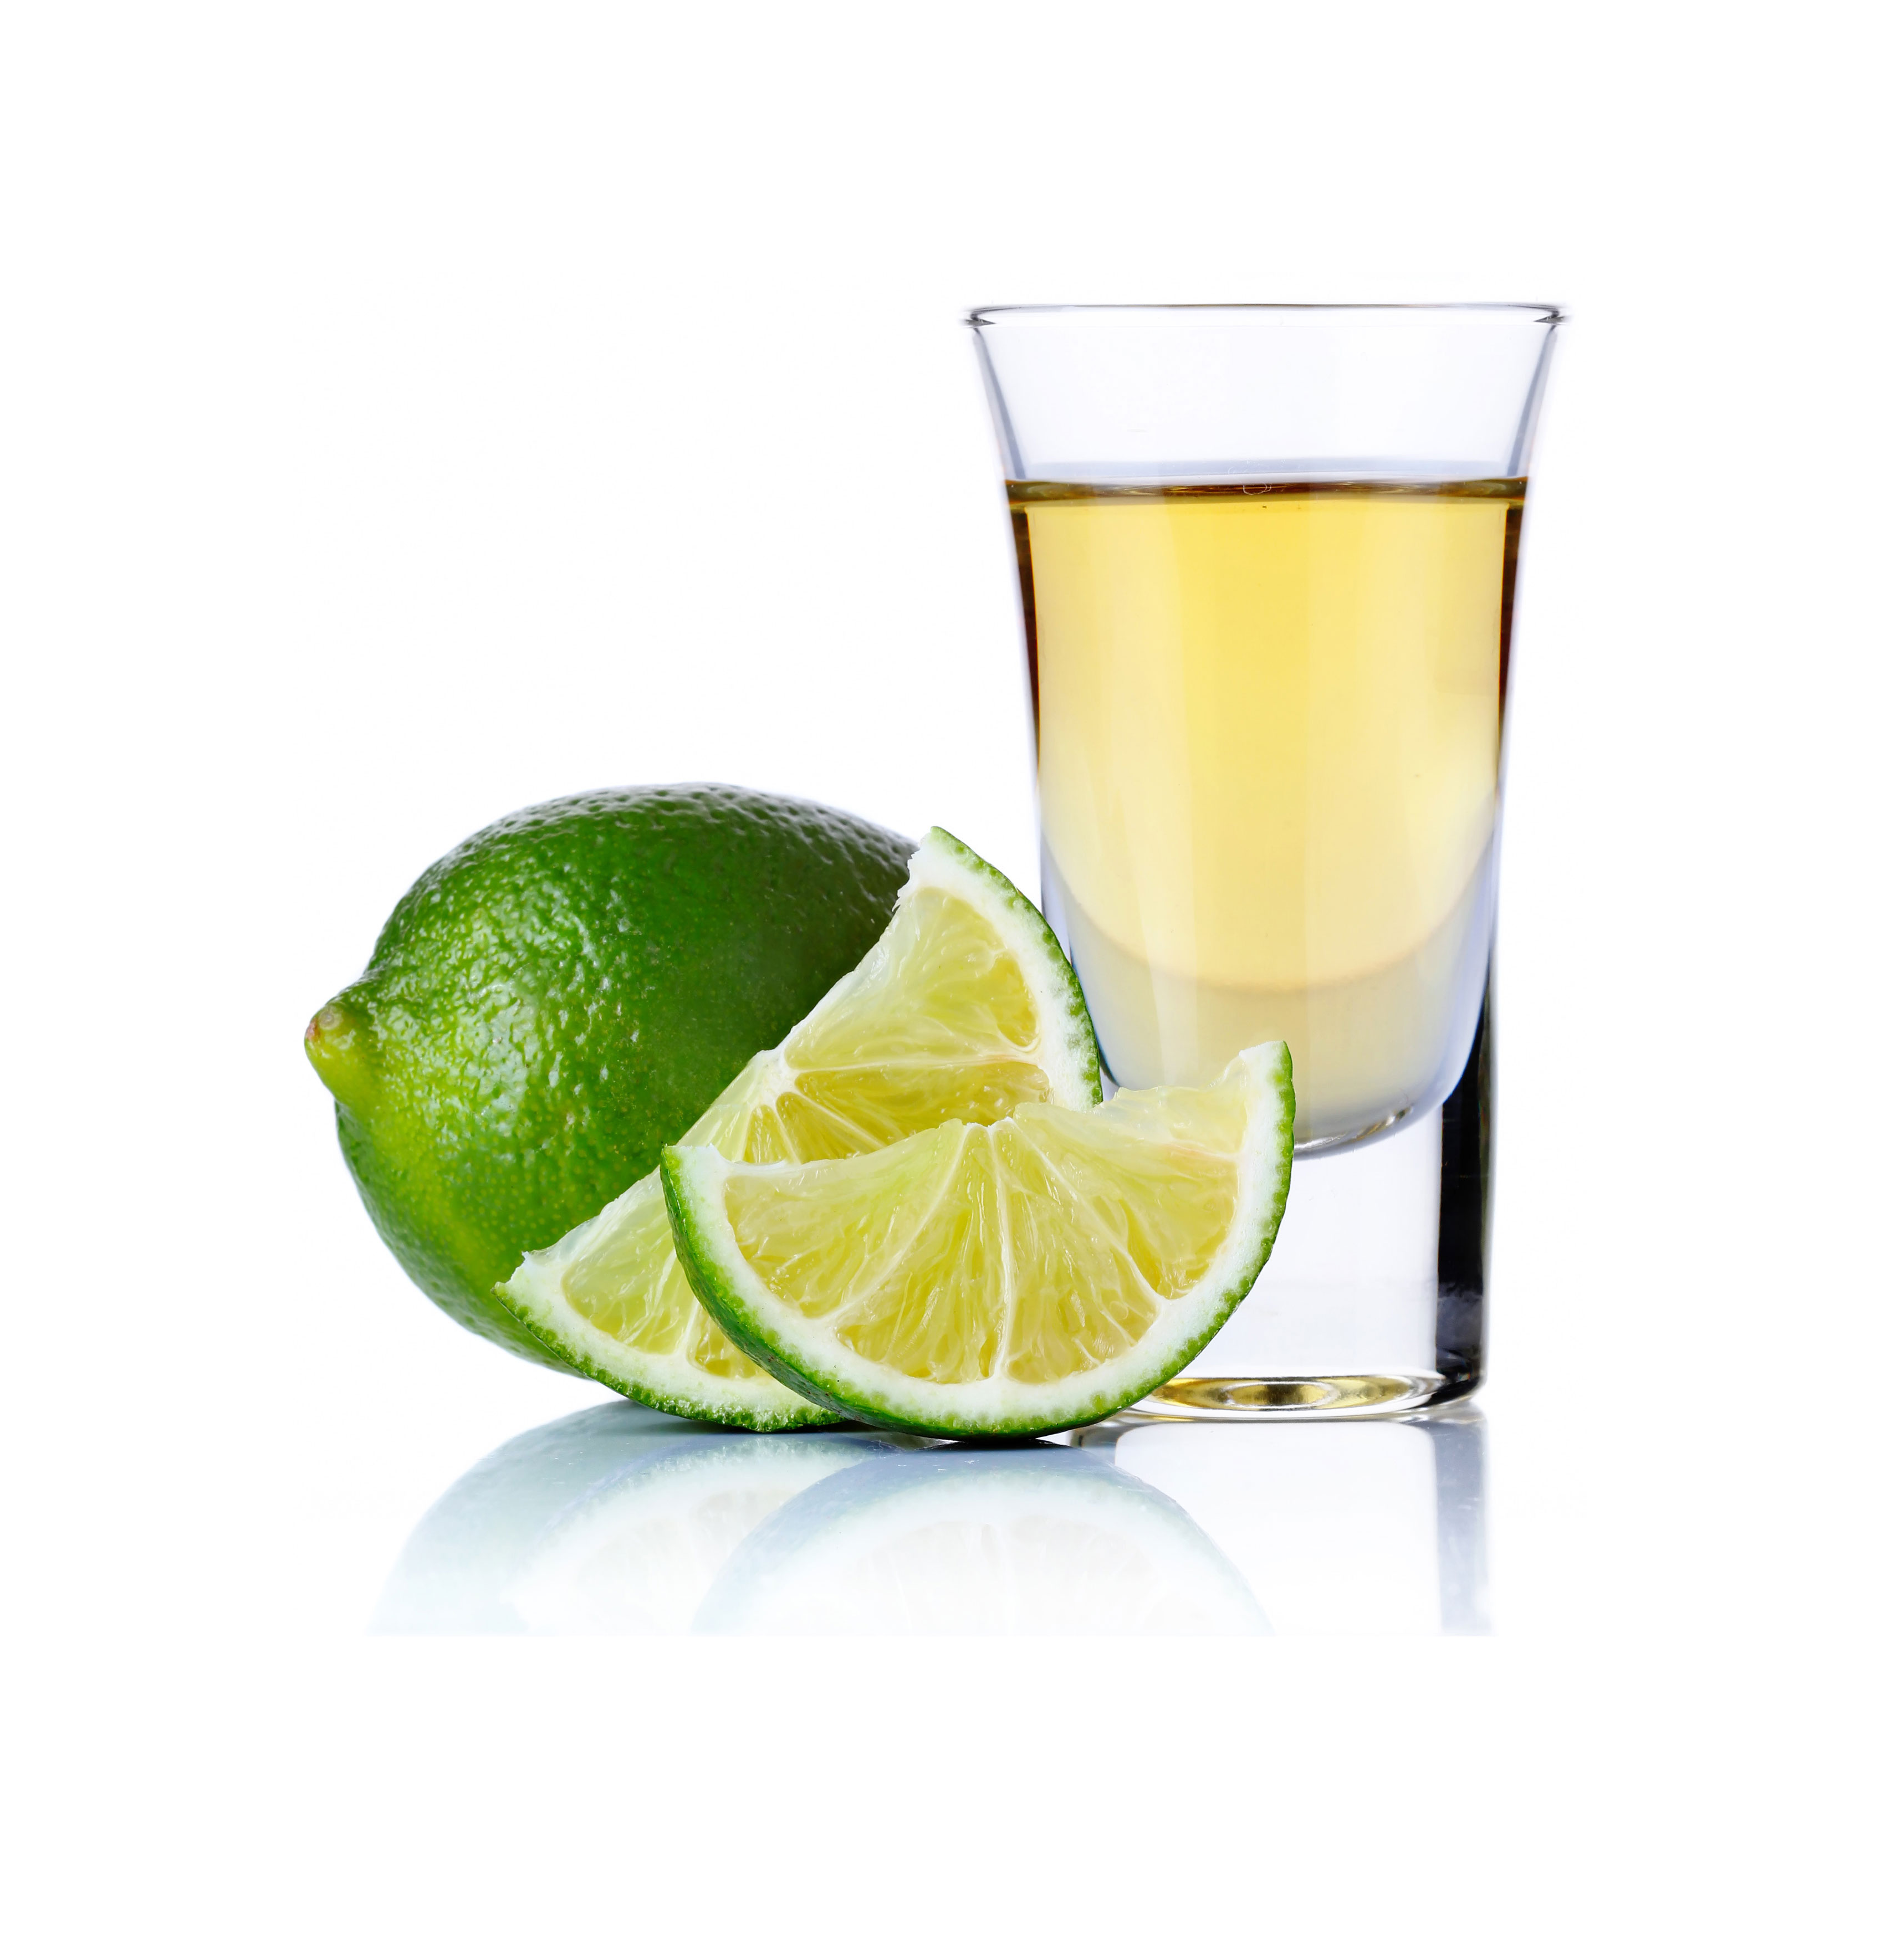 Tequila Png Google Search Tequila Day National Tequila Day Tequila